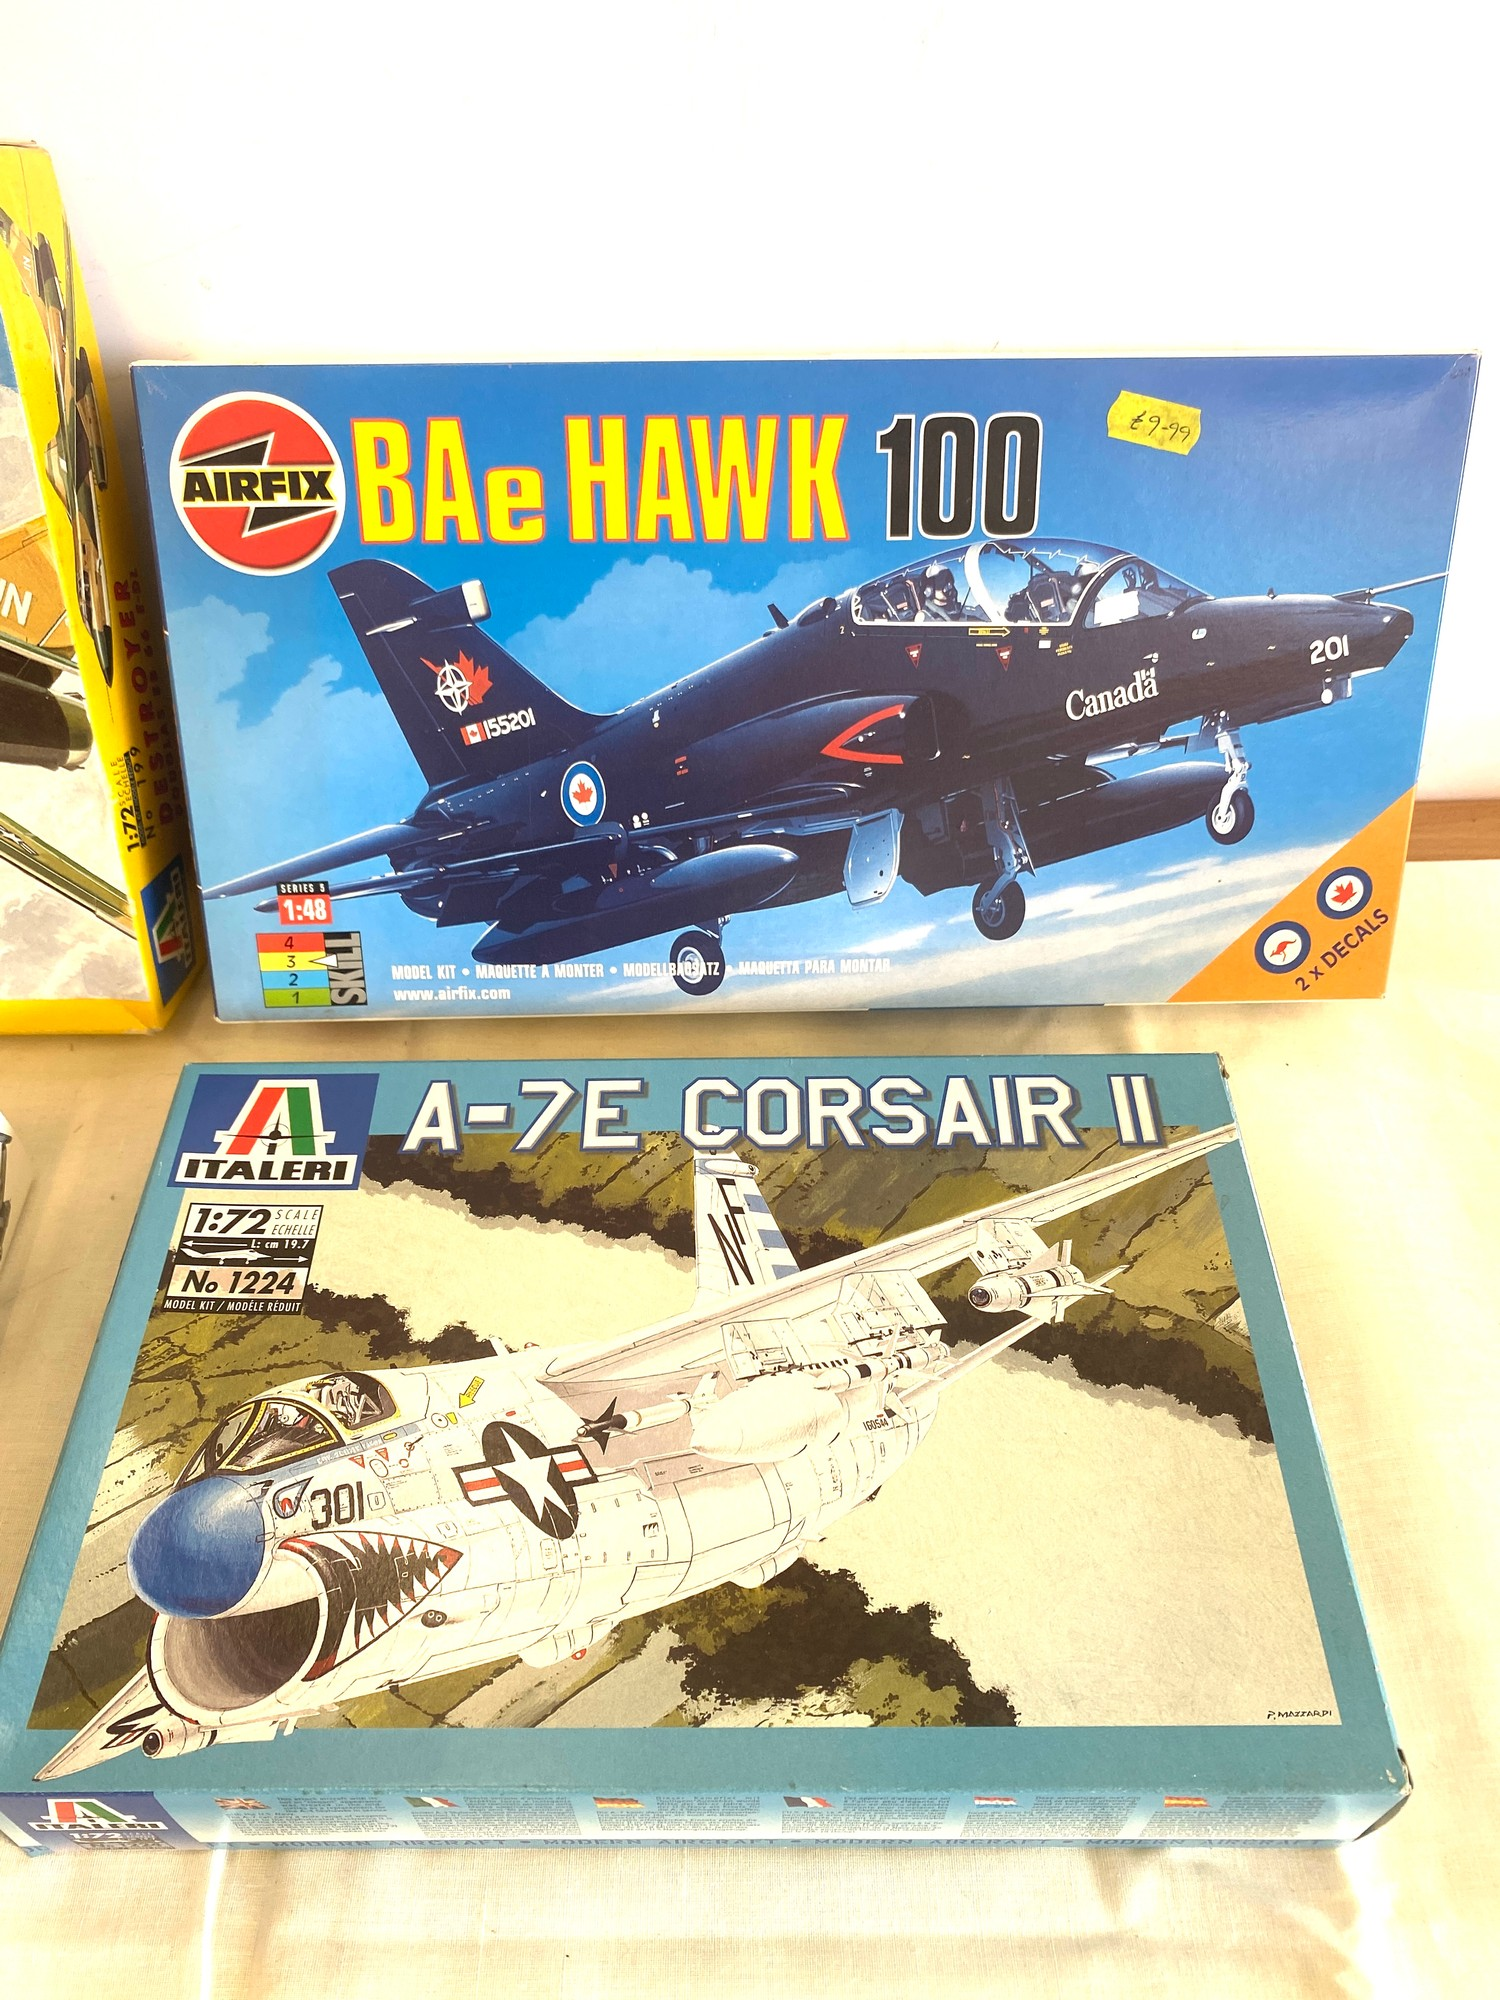 Selection of 4 boxed model air crafts includes, Destroyer Douglas EB 66 E-DL, Airfix BAe Hawk 100, - Image 2 of 3